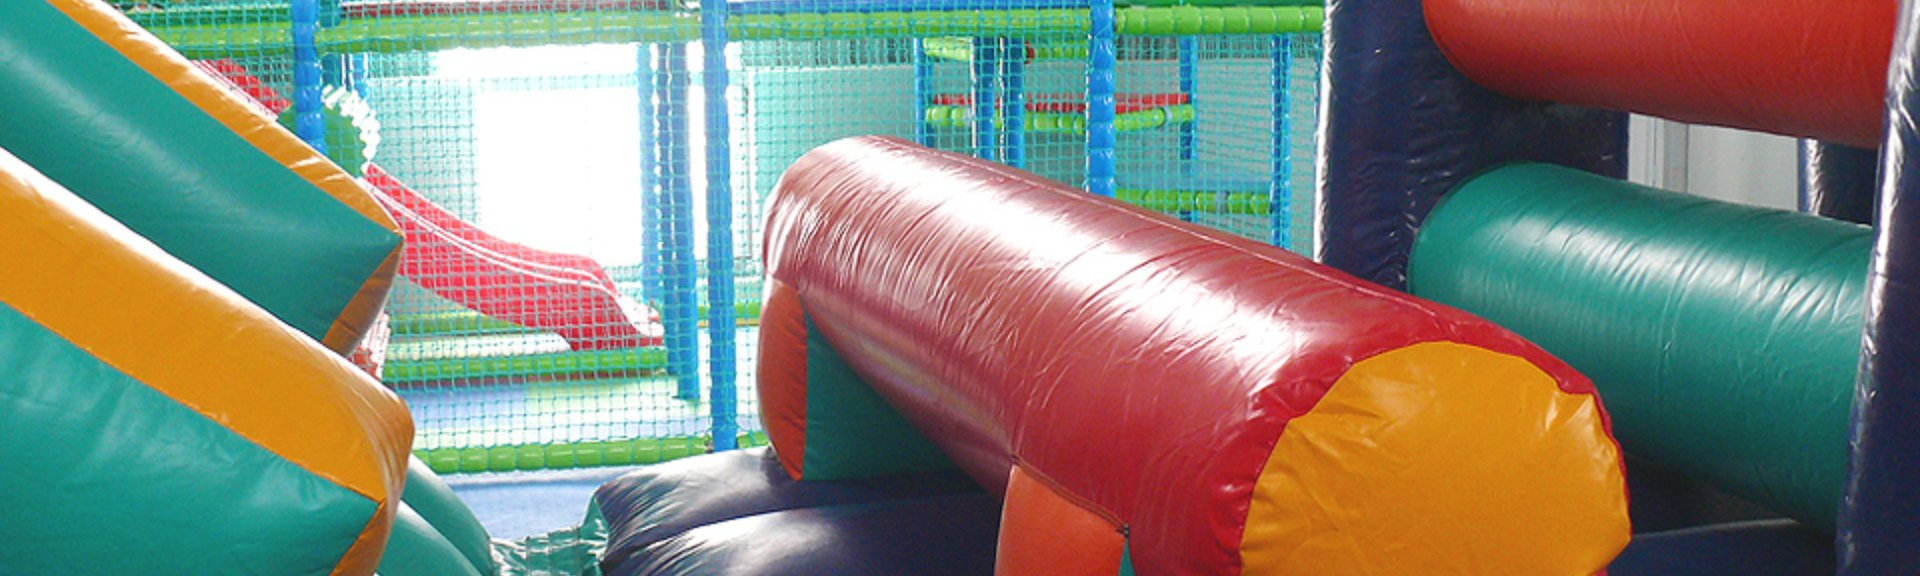 Funtastic Indoor Party and Play Venue | Cape town | Things to do With Kids